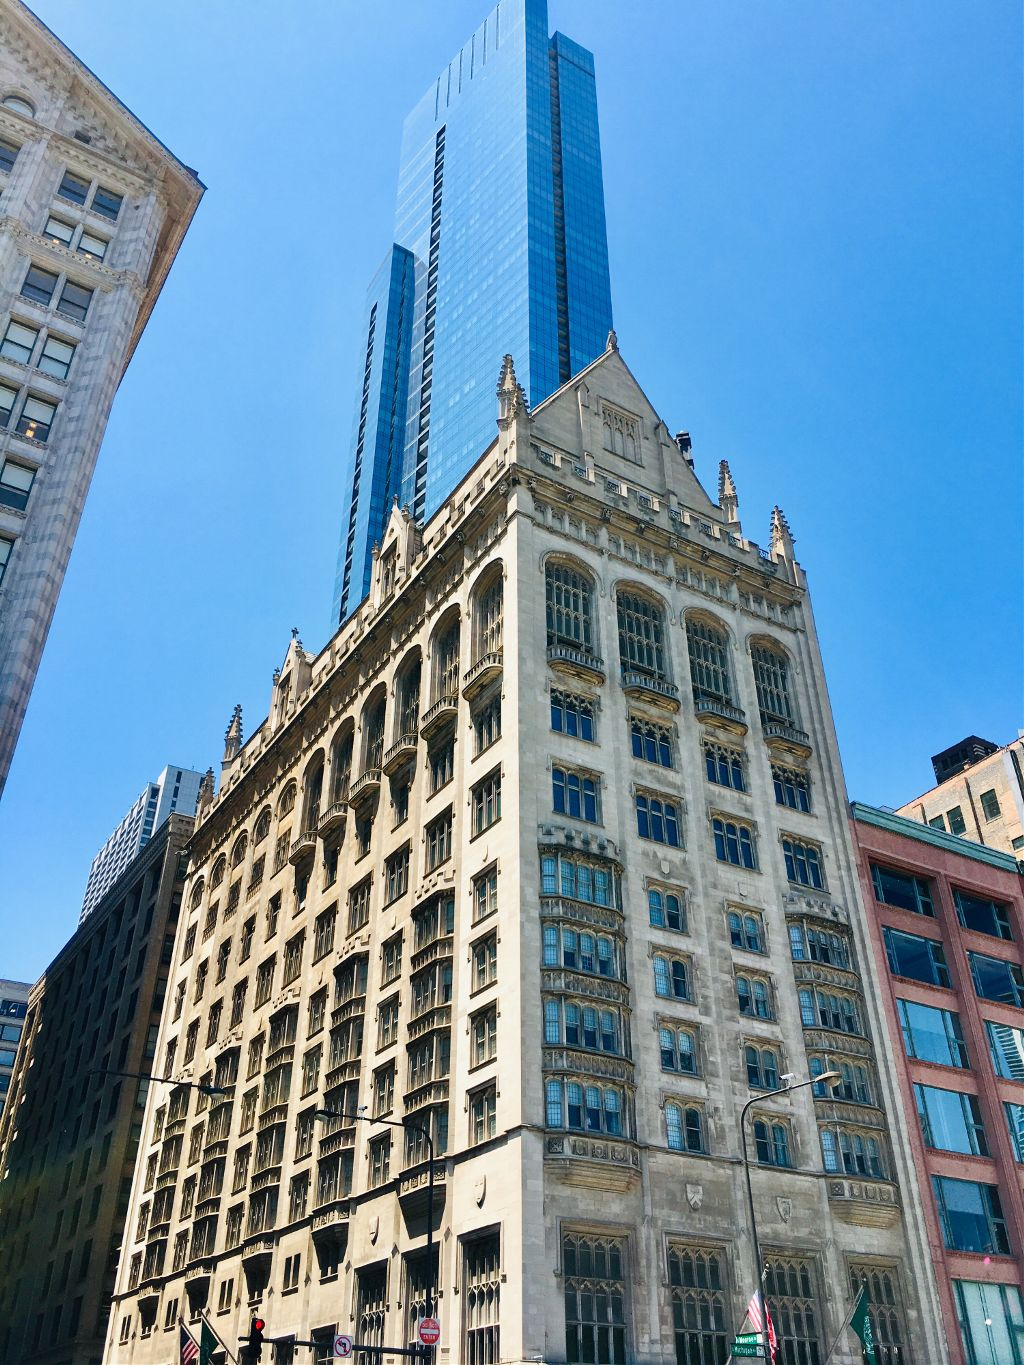 #chicago #downtown #building #windows #bluesky #beautifulday #mypic #myphoto #cellphonephotography #loveit #amazing #architecture #city #streetphotography #michiganave #freetoedit